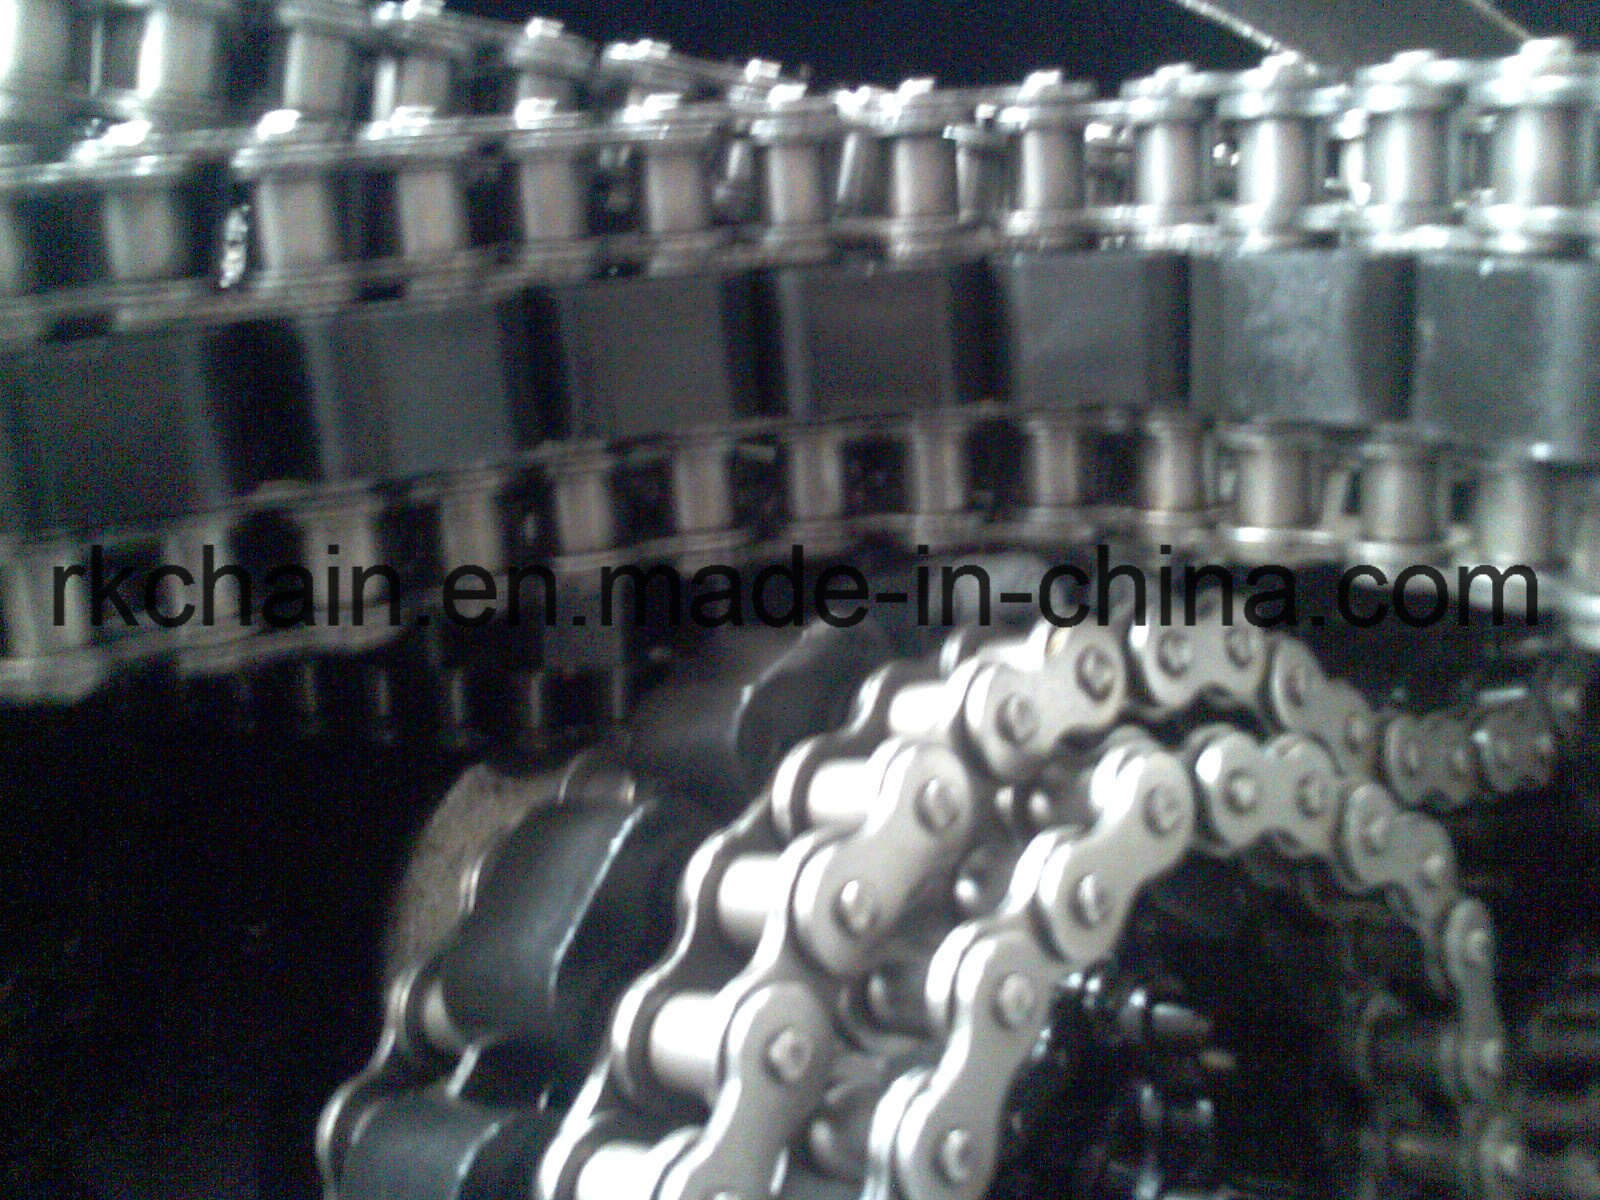 Industrial Roller Chain12A-3 with Nylon Rollers